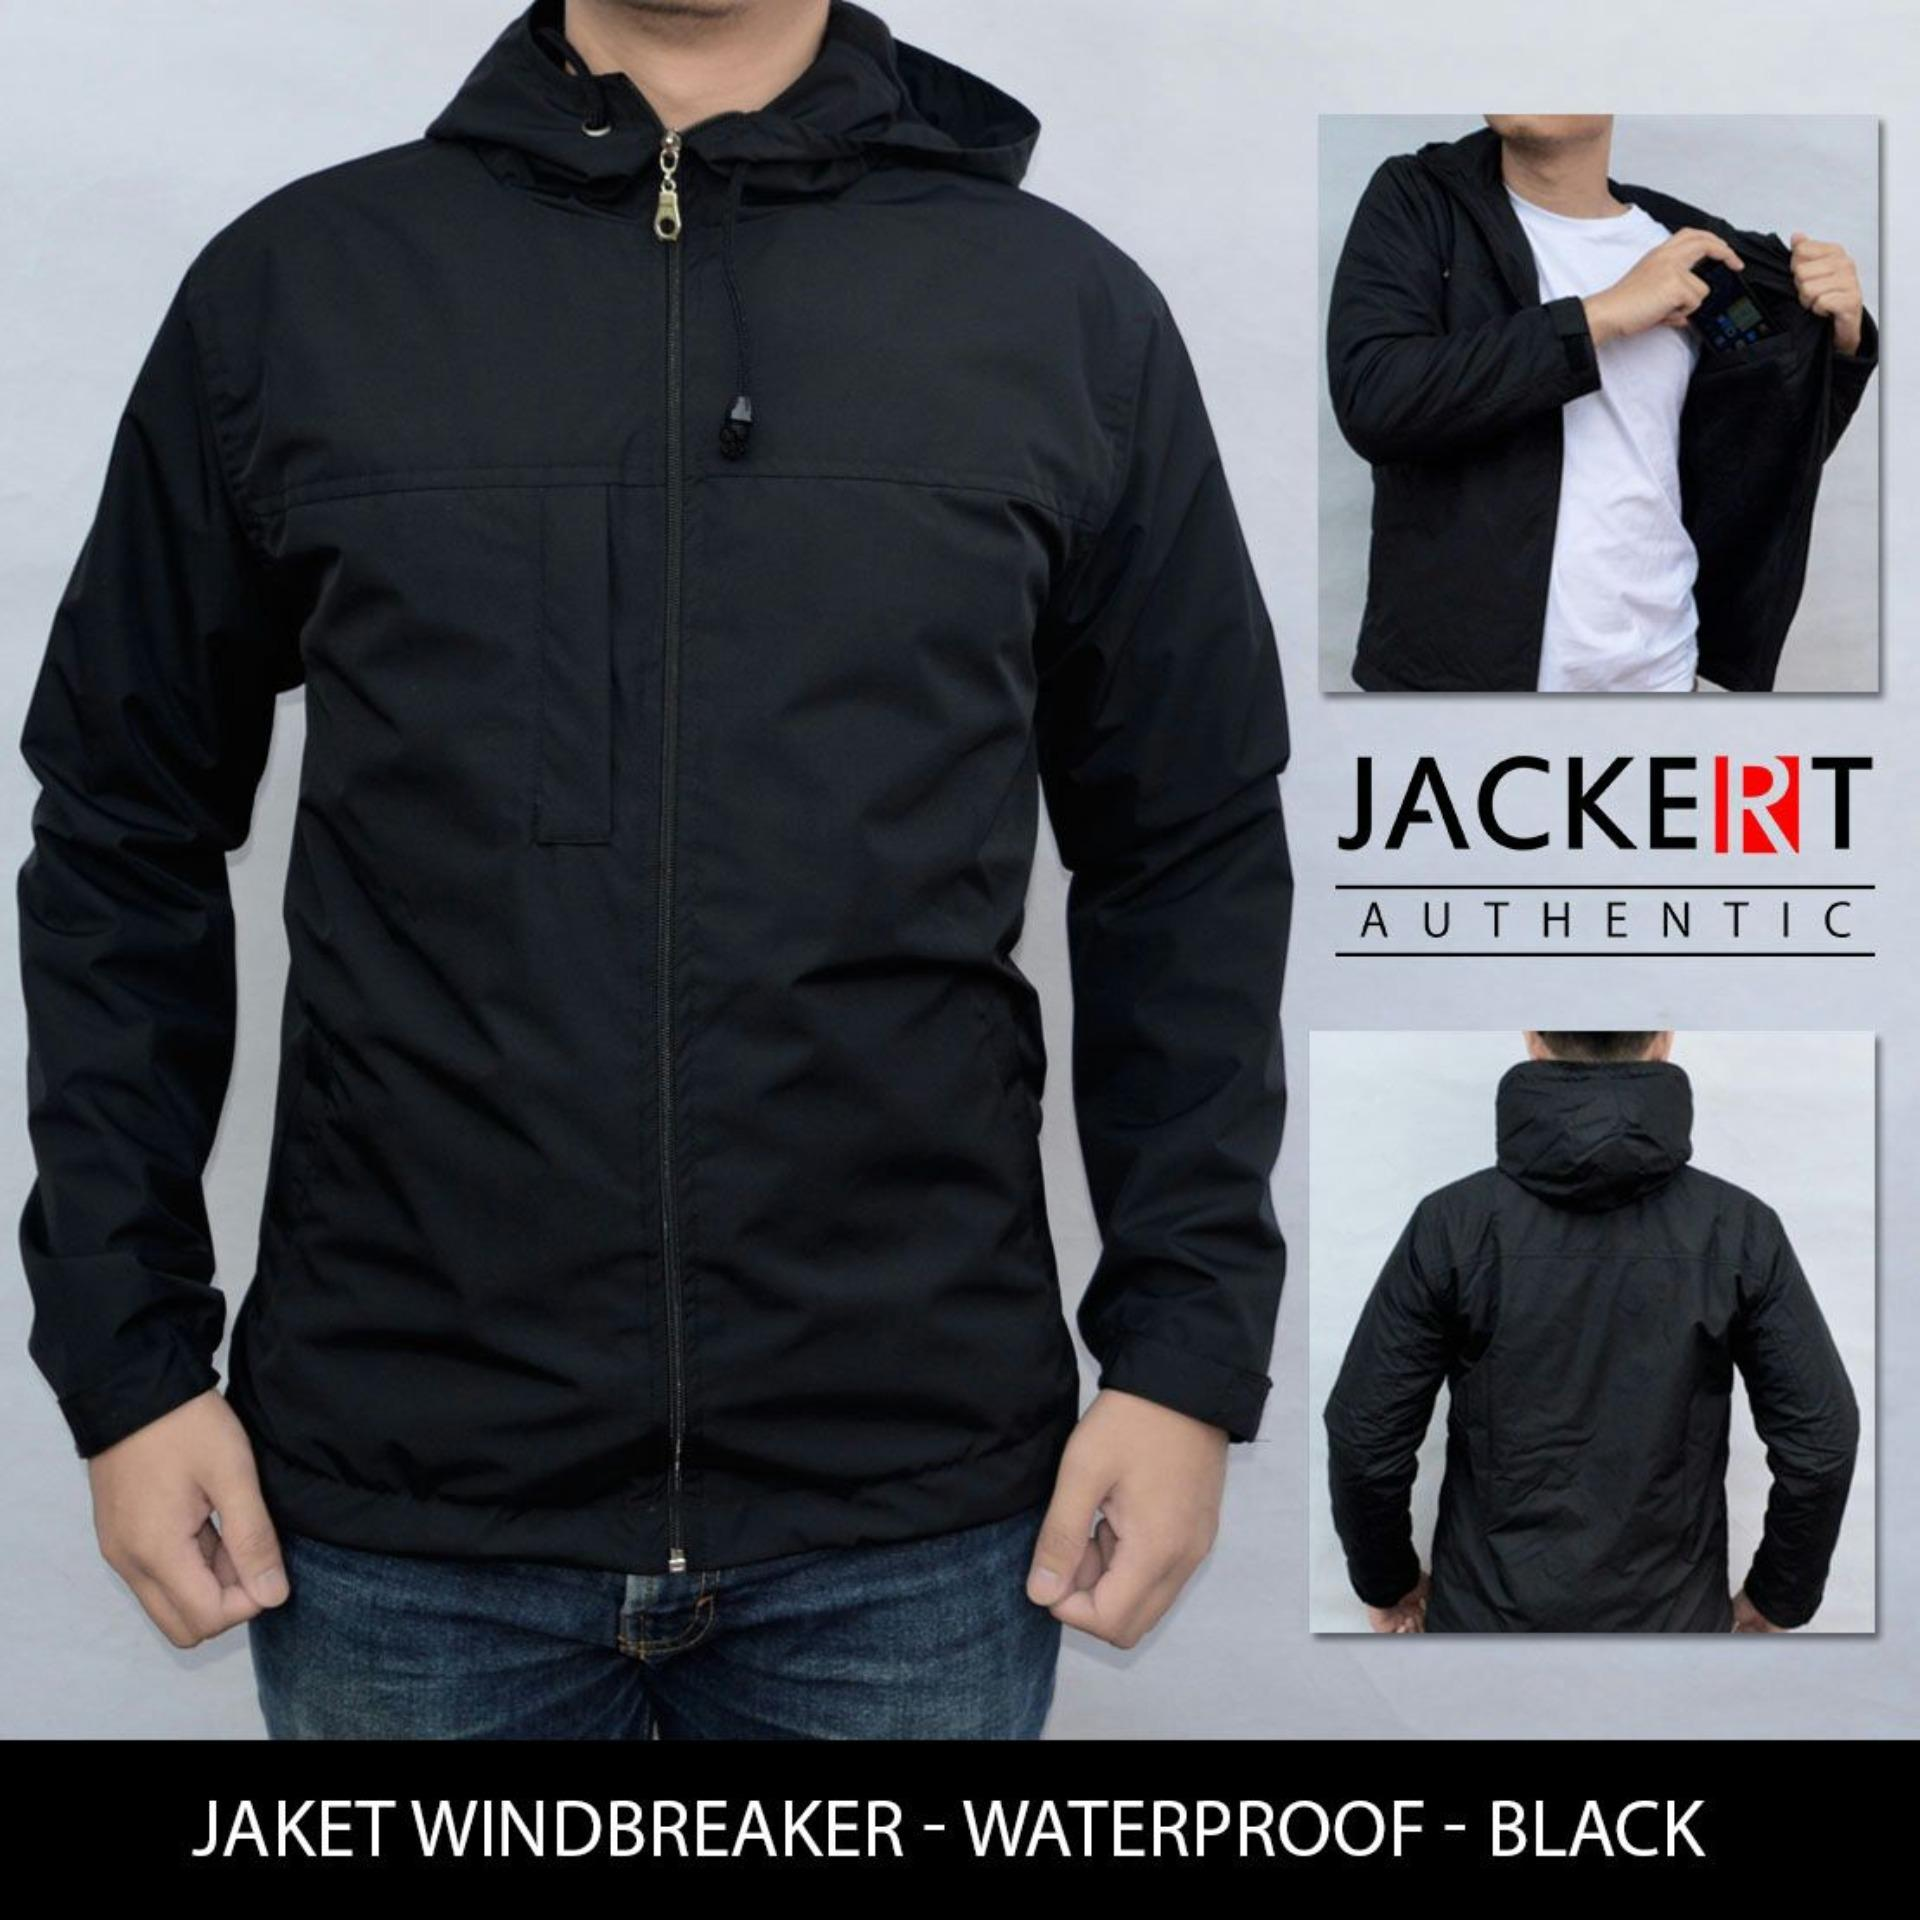 Jaket Motor Harian Model Simple Polos Hitam Waterproof Semi Outdoor Jackert Diskon 40